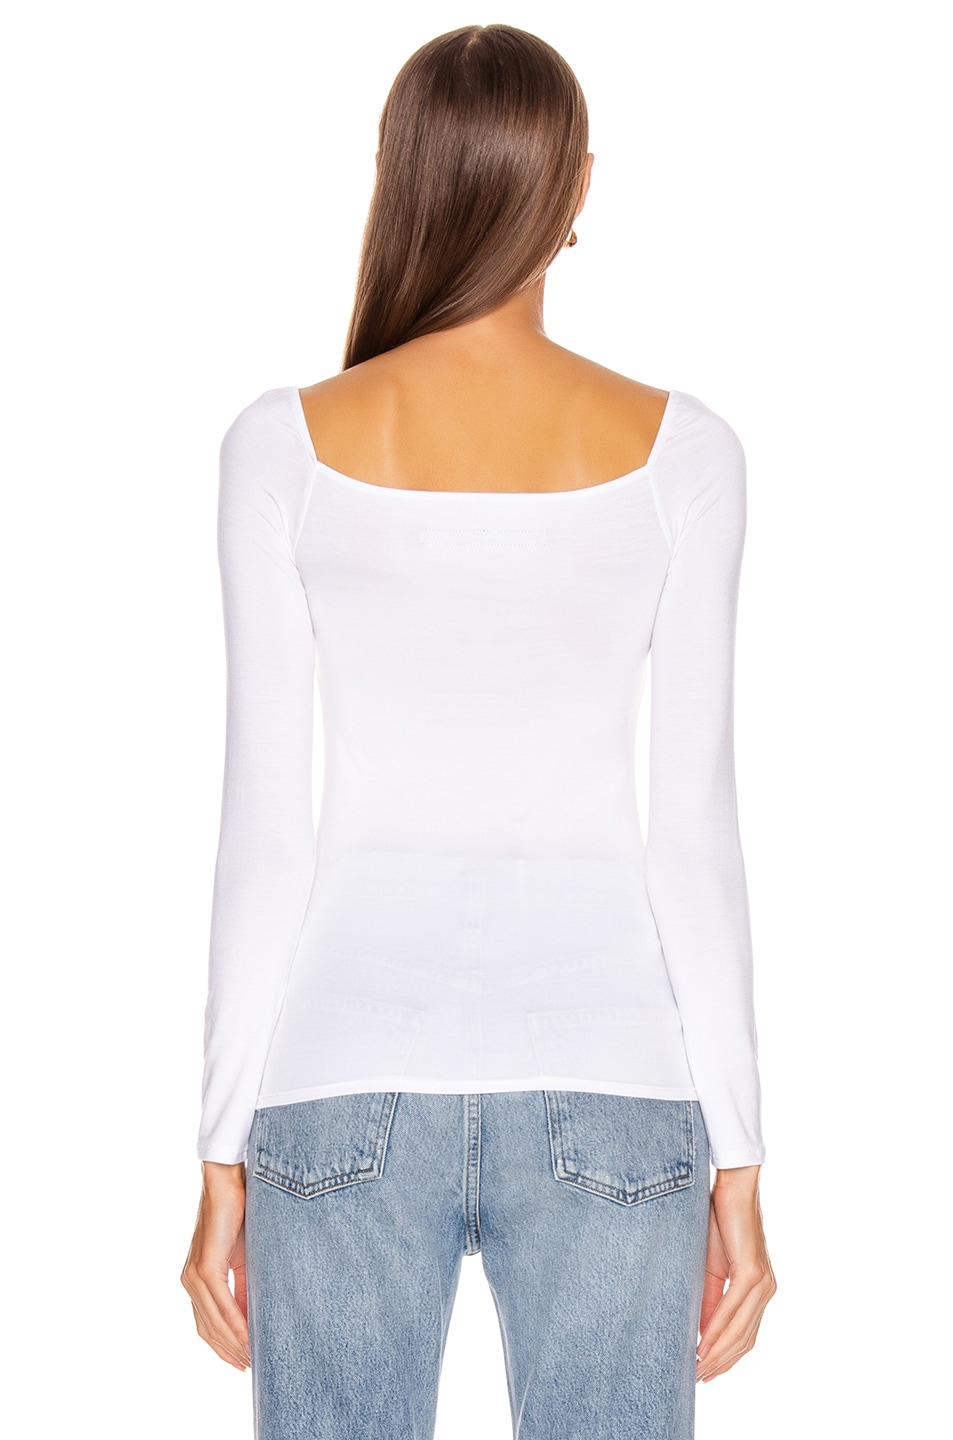 Image 3 of Enza Costa Italian Viscose Long Sleeve Square Neck Top in White